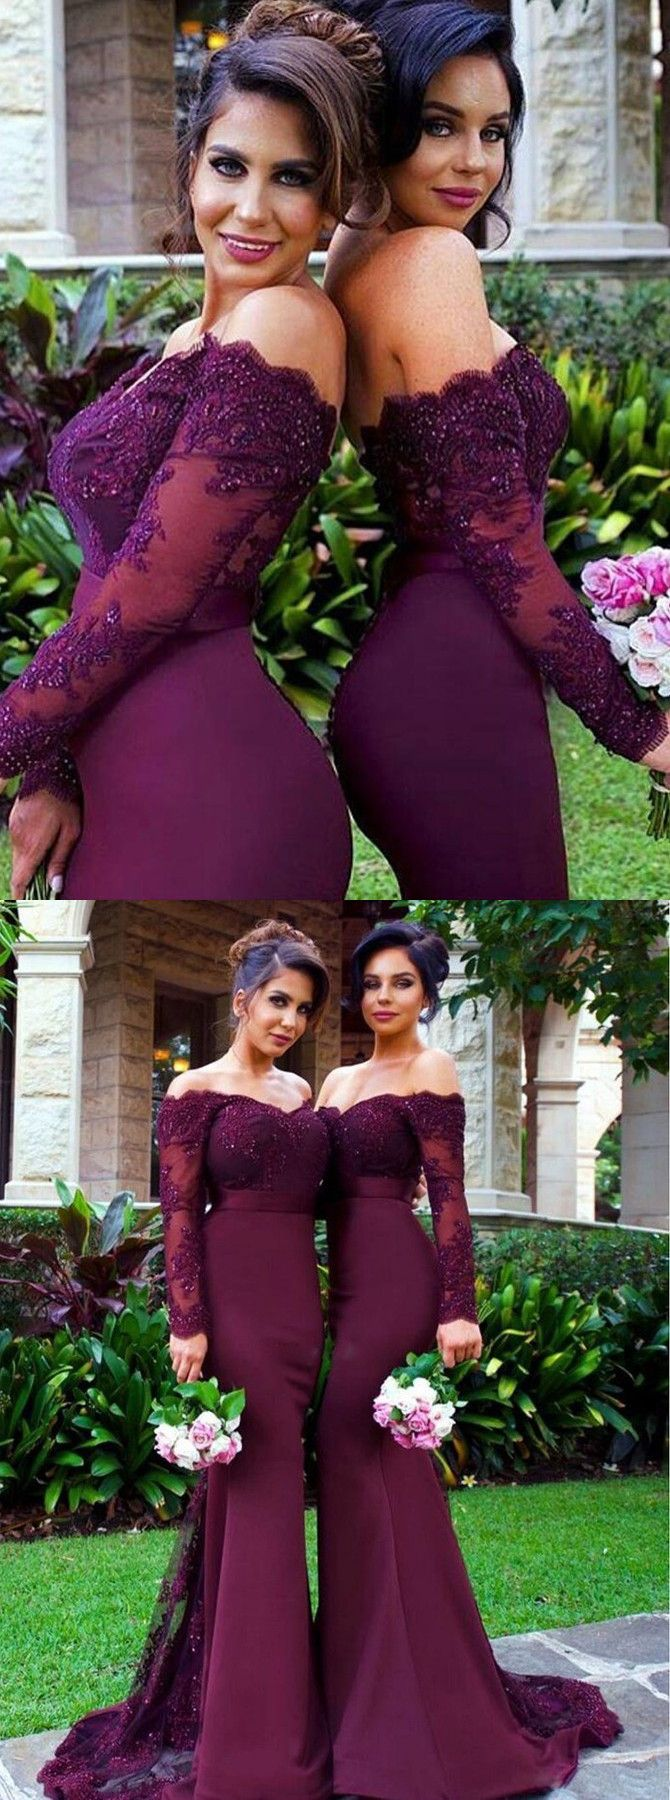 Burgundy Bridesmaid Dresses,Long SleeveBridesmaid Gowns,Mermaid Bridesmaid Dresses,Long Prom Dress,Formal Women Evening Dress,Off The Shoulder Bridesmaid Dresses,Lace Bridesmaid Dress,Floor Length Birdesmaid Dresses